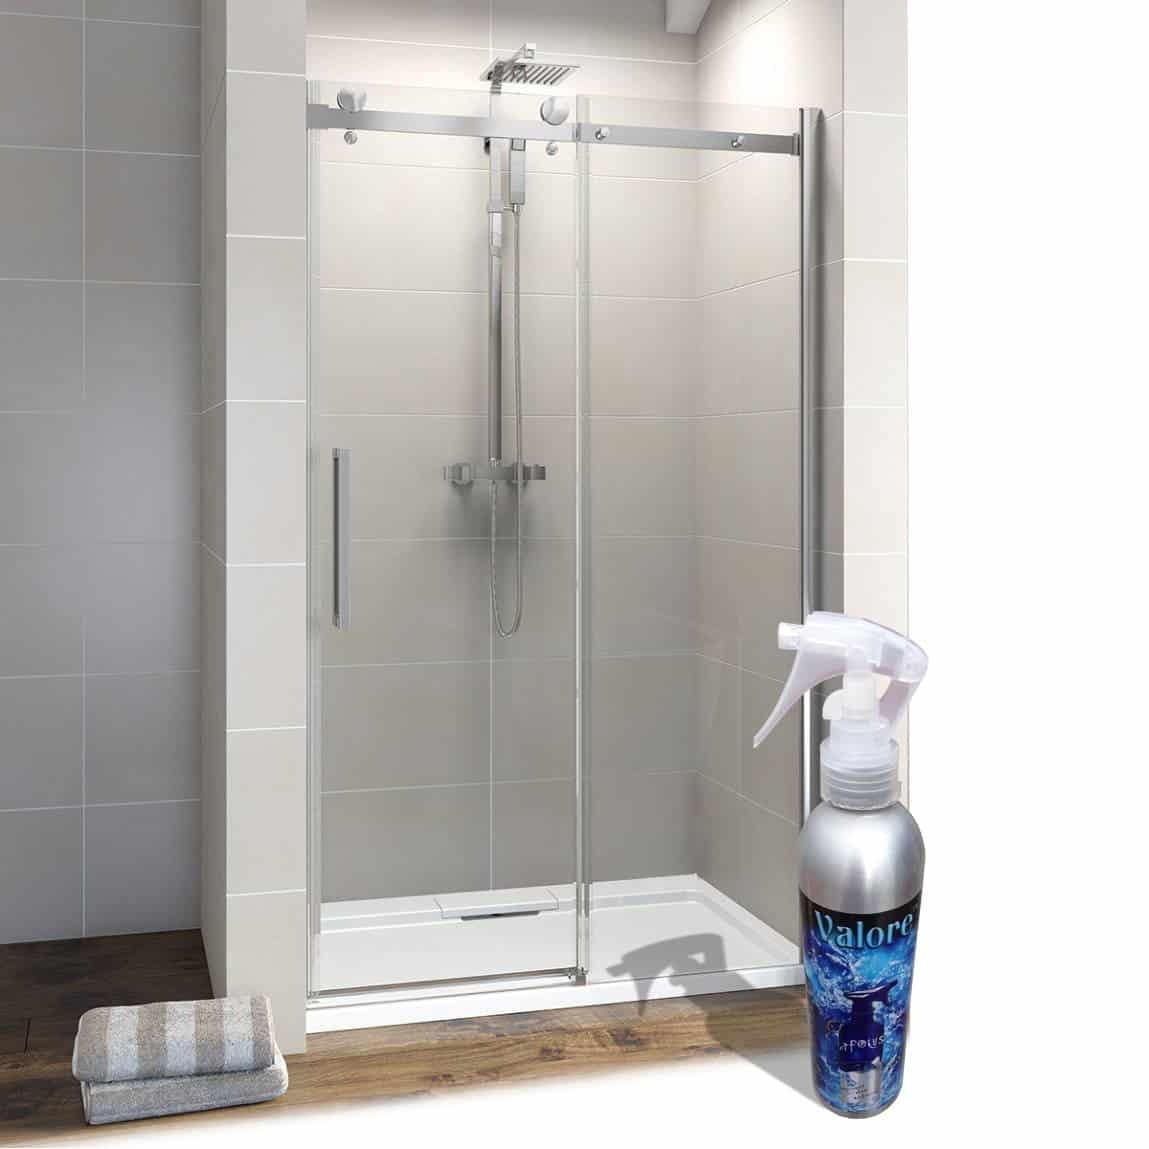 Valore - Shower Glass Sealer